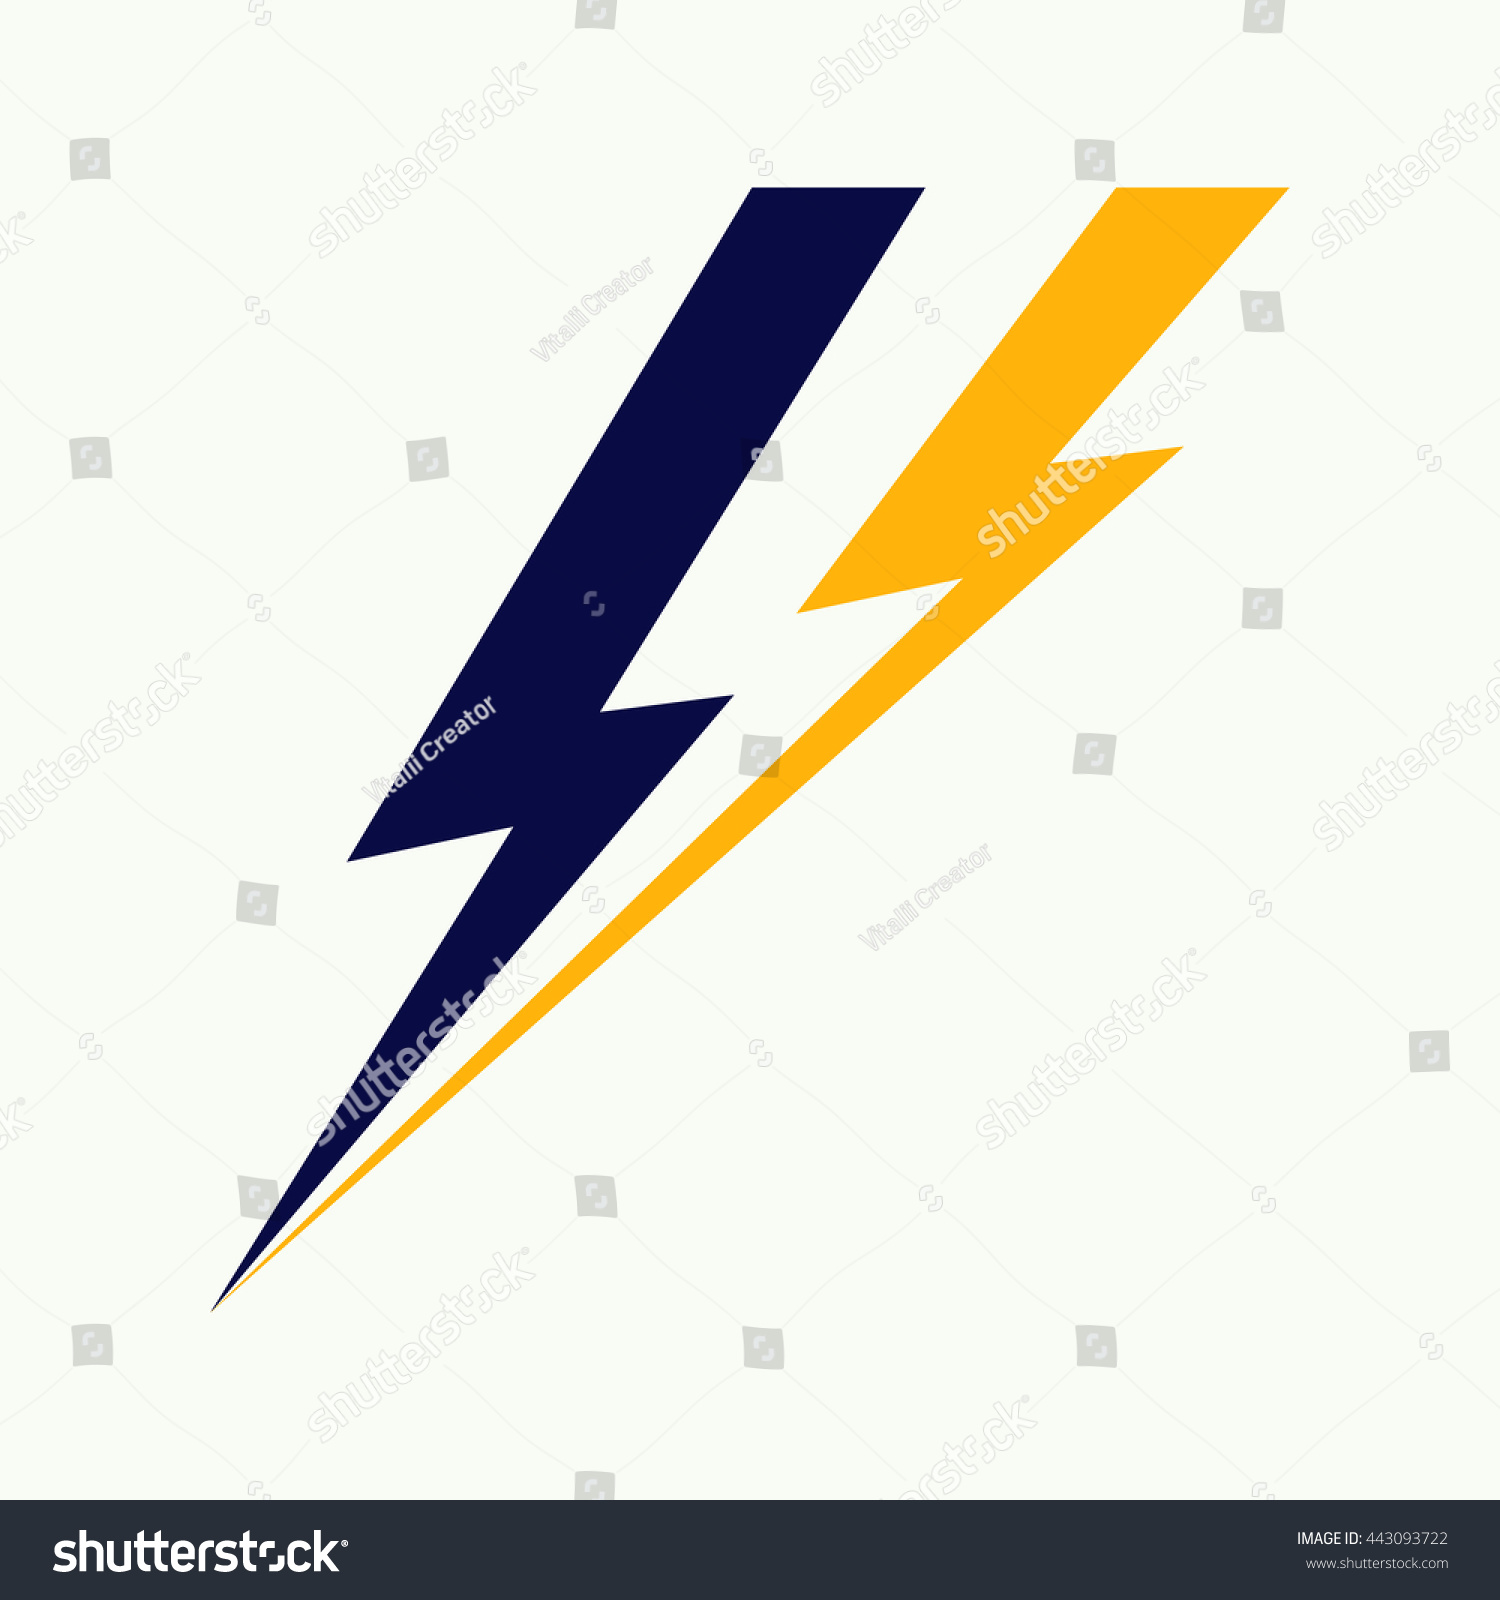 Vector Lightning Bolt Logo Lightning Bolt Stock Vector 443093722 ... for Vector Lighting Bolt  155fiz